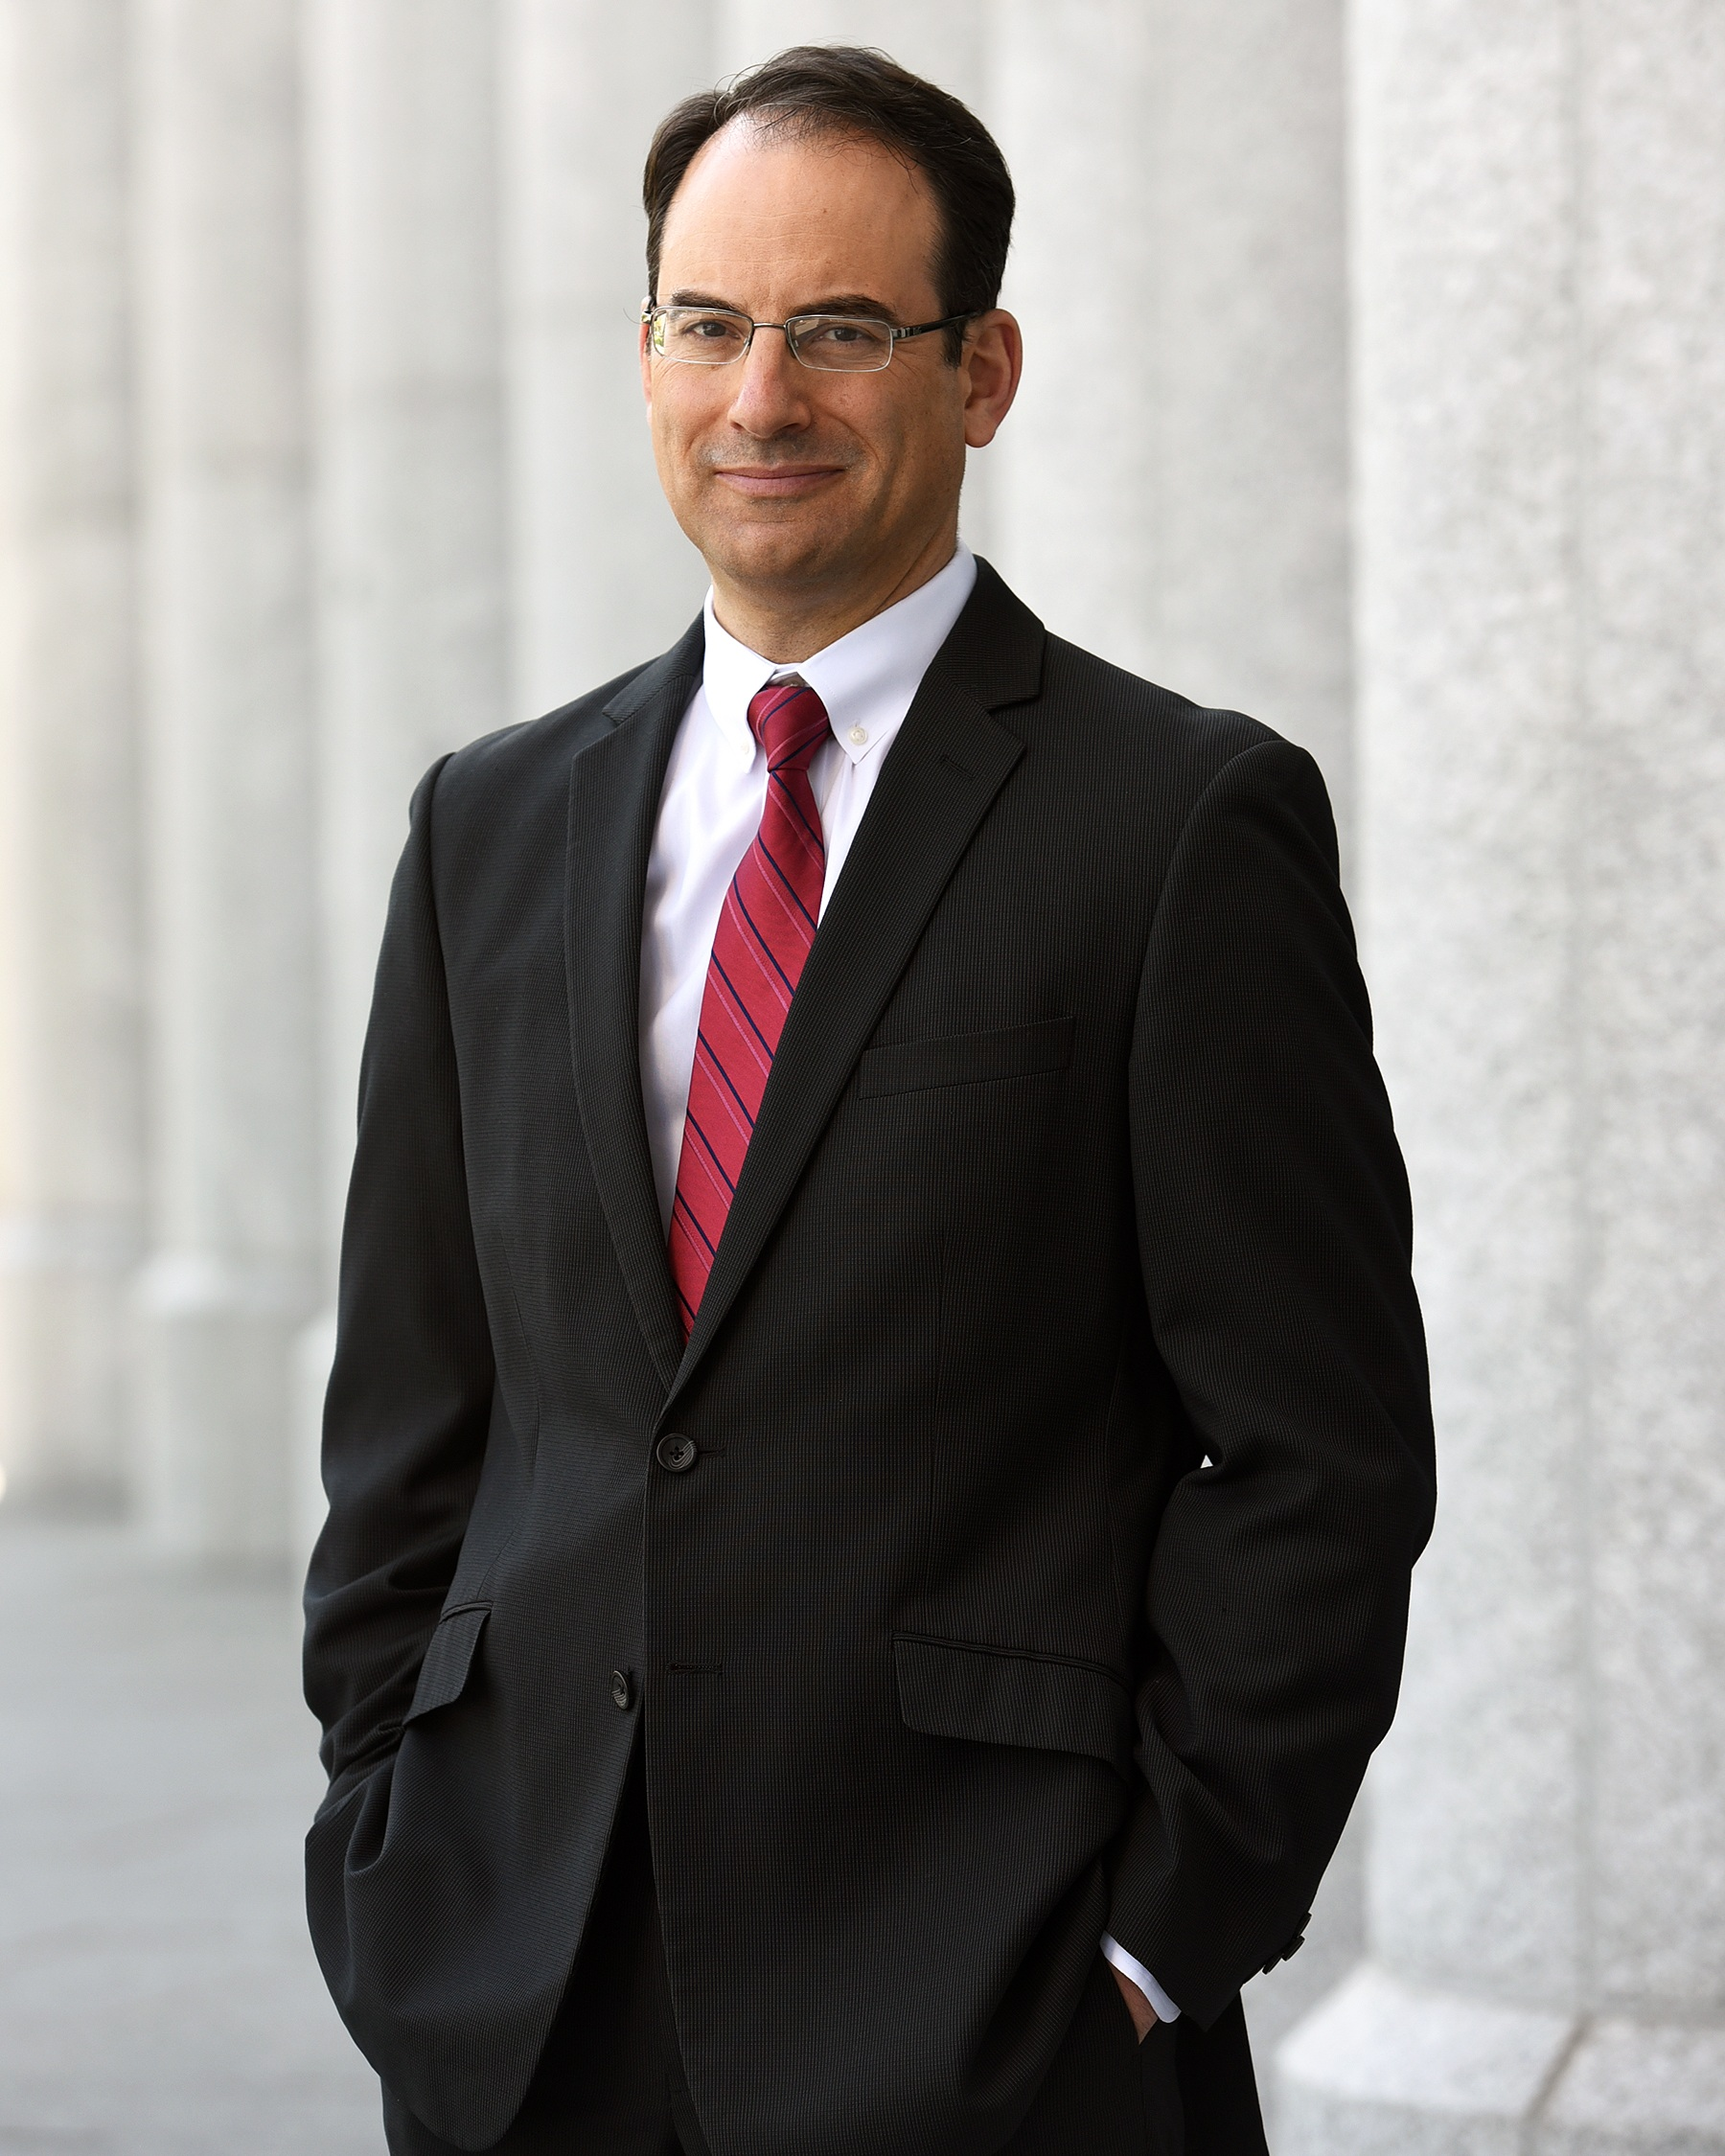 Phil Weiser   Colorado Attorney General   LinkedIn    Twitter